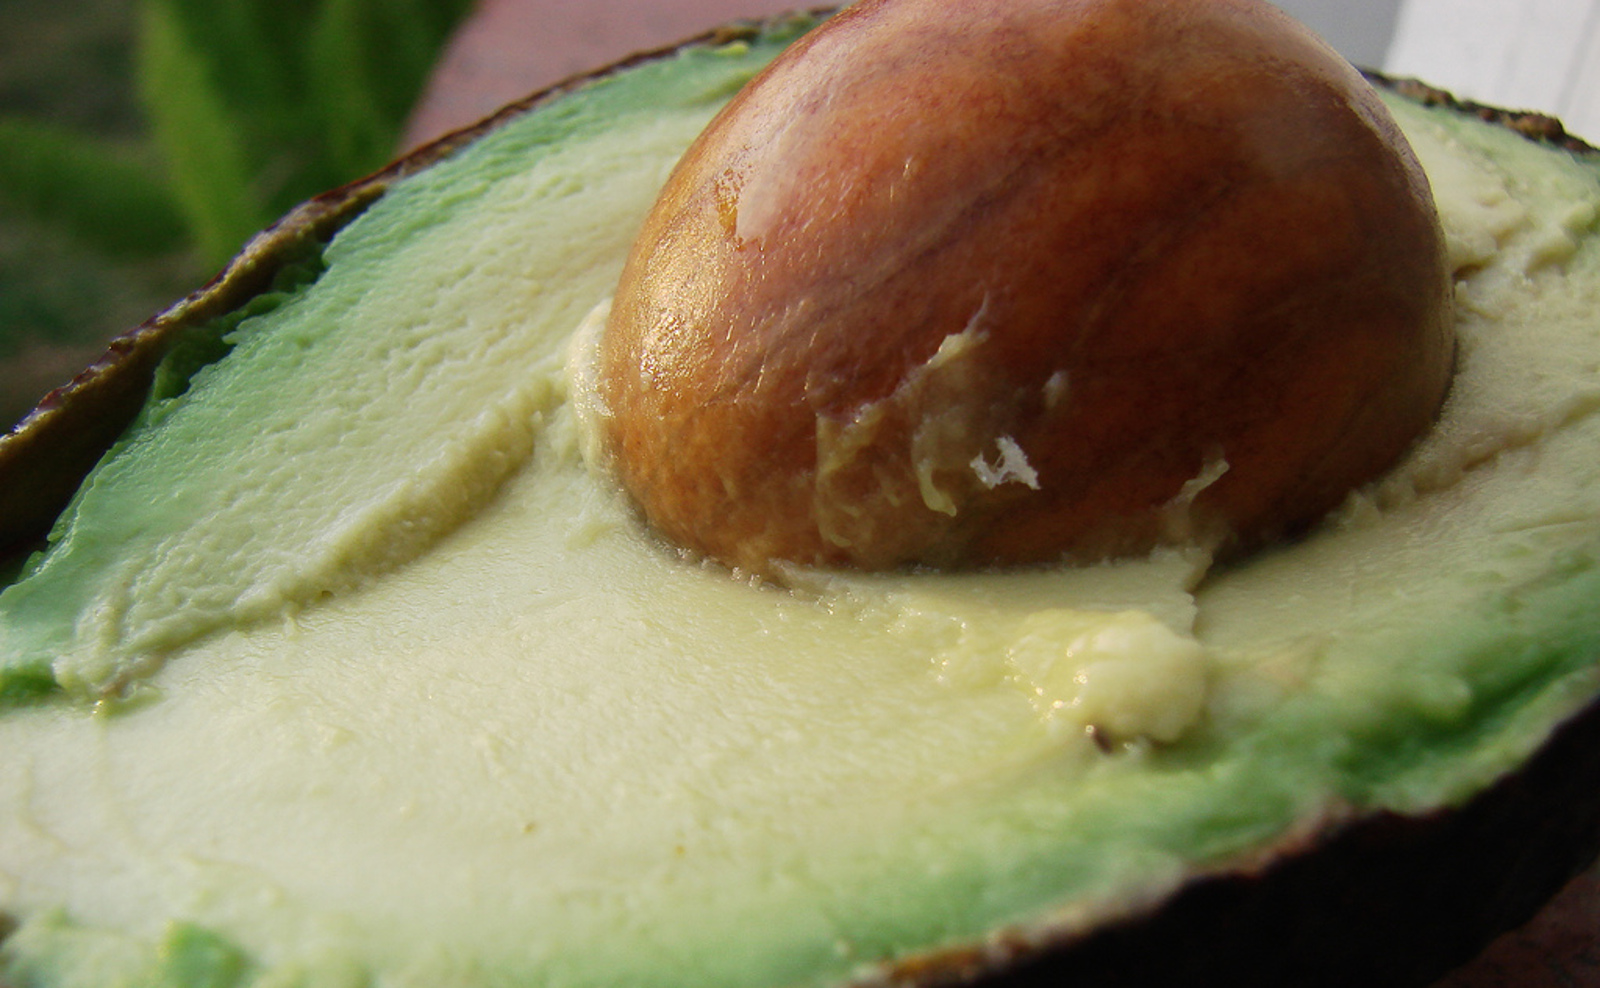 Why You Should Eat That Avocado Seed and How to Make it Tasty